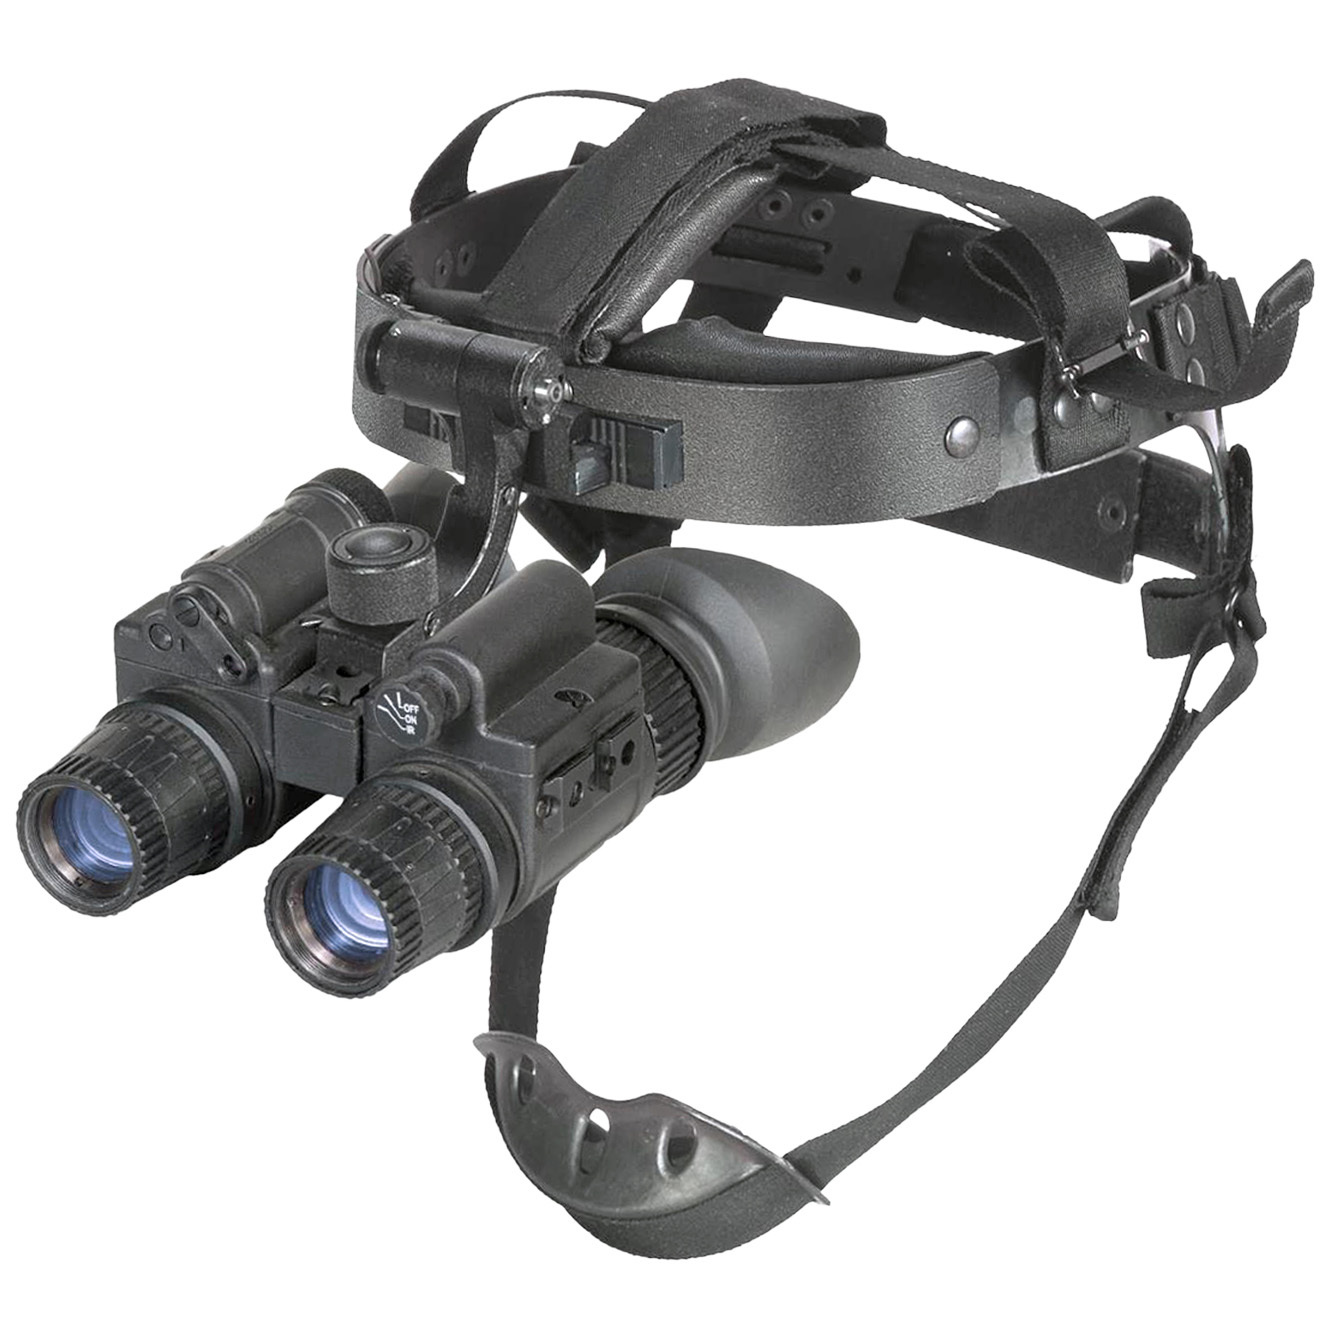 "Armasight N-15 Gen 2+ ID Night Vision Goggles are professional quality night-vision and improved definition in a lightweight package... dual tube redundancy AND depth perception! Rugged, dependable night vision performance that won't weigh you down, AND delivers dual-tube depth perception! The Armasight N-15 Gen 2+ ID Night Vision Goggles feature high-quality gen 2+ performance with an impressive 47-54 lp / mm resolution that rivals many gen. 3 tubes. It's all yours in a rugged, compact package that's packed with mission-ready features and quality specifications that equal or better military spec! All the good stuff: Automatic brightness control, bright light shut-off circuitry, built-in IR illuminator with spot / flood lens, multi-coated optics... even an adjustable head mount kit that automatically shuts the unit off to preserve battery life when you flip your goggles up! Bring these features into focus: Gen 2+ image intensifier tube is rated to a sharp 47-54 lp / mm resolution Dual-tube design gives vastly-improved depth perception plus Murphy's Law-grade redundancy Auto brightness control and bright light cut-off 1X magnification Built-in infrared illuminator with spot / flood lens provides invisible light when natural light is scarce Lens system: F1.2, 27mm... multi-coated glass lenses ensure crystal-clear views Focus: .25m to infinity 15mm eye relief 40 degrees F.O.V. Rugged, lightweight, waterproof and built for a wide range of applications Easy to use with simple control buttons and eyepiece-only focusing Includes adjustable head mount with flip-up for hands-free use... unit automatically shuts off when flipped up Uses one 3V CR123 lithium battery (included) or AA batteries for up to 40 hrs of use Approx. 5 1/2"" x 4 1/2"" x 2 3/4"", 1 1/2 lbs. Own the night! - $3,769.99"